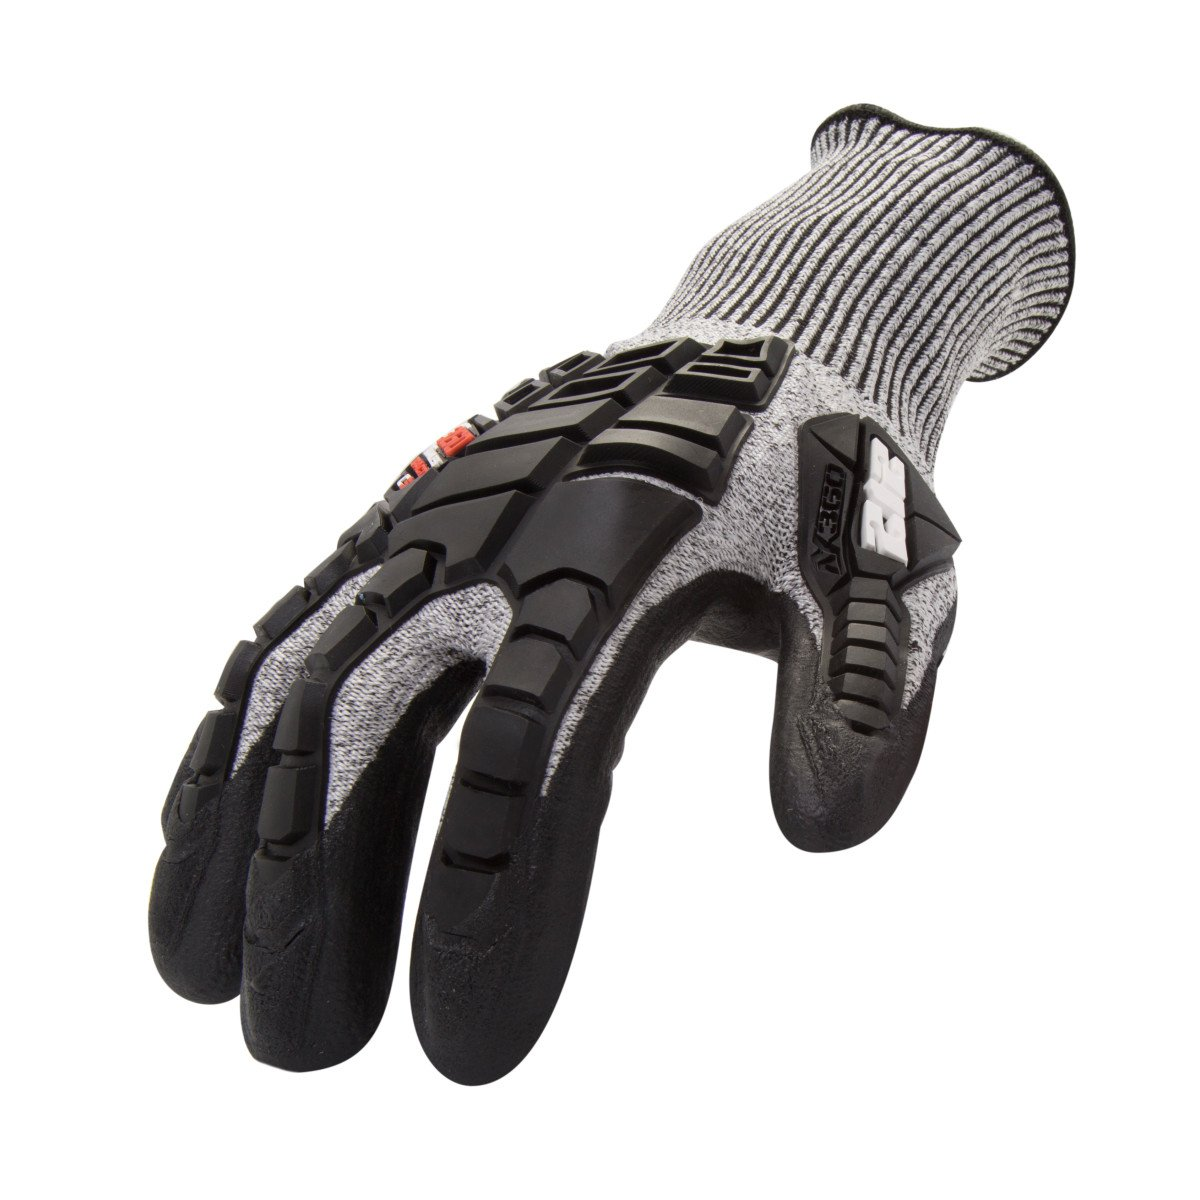 212 Performance Gloves AXIMPC5-06-010 AX360 Impact Cut Resistant Gloves EN Level 5, ANSI A3 Large